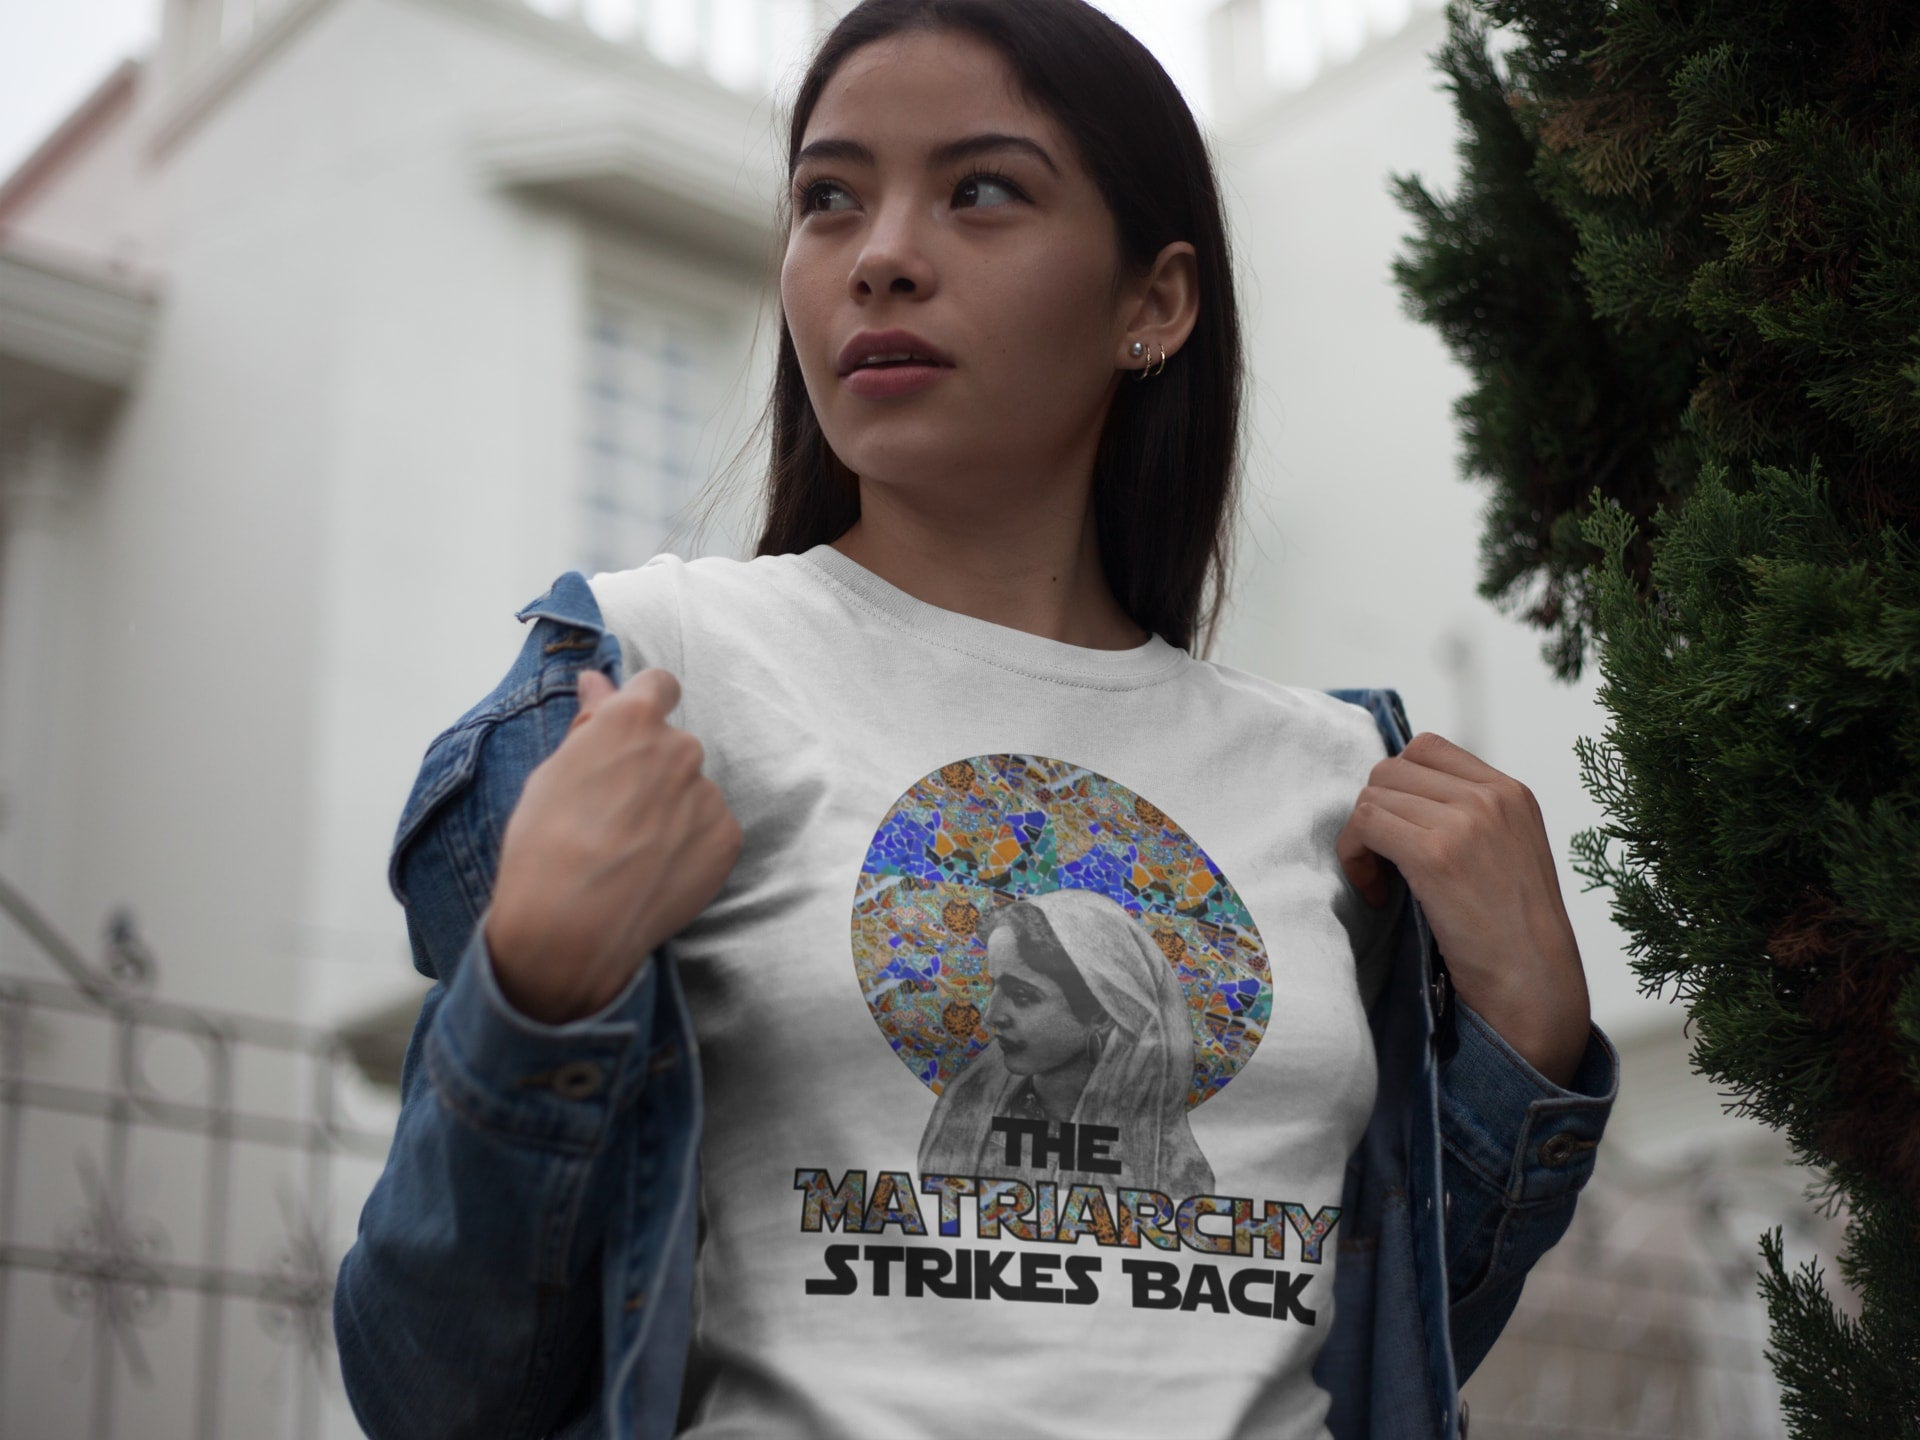 This is a photo of a model wearing Montevideo's The Matriarchy Strikes Back Feminist t shirt